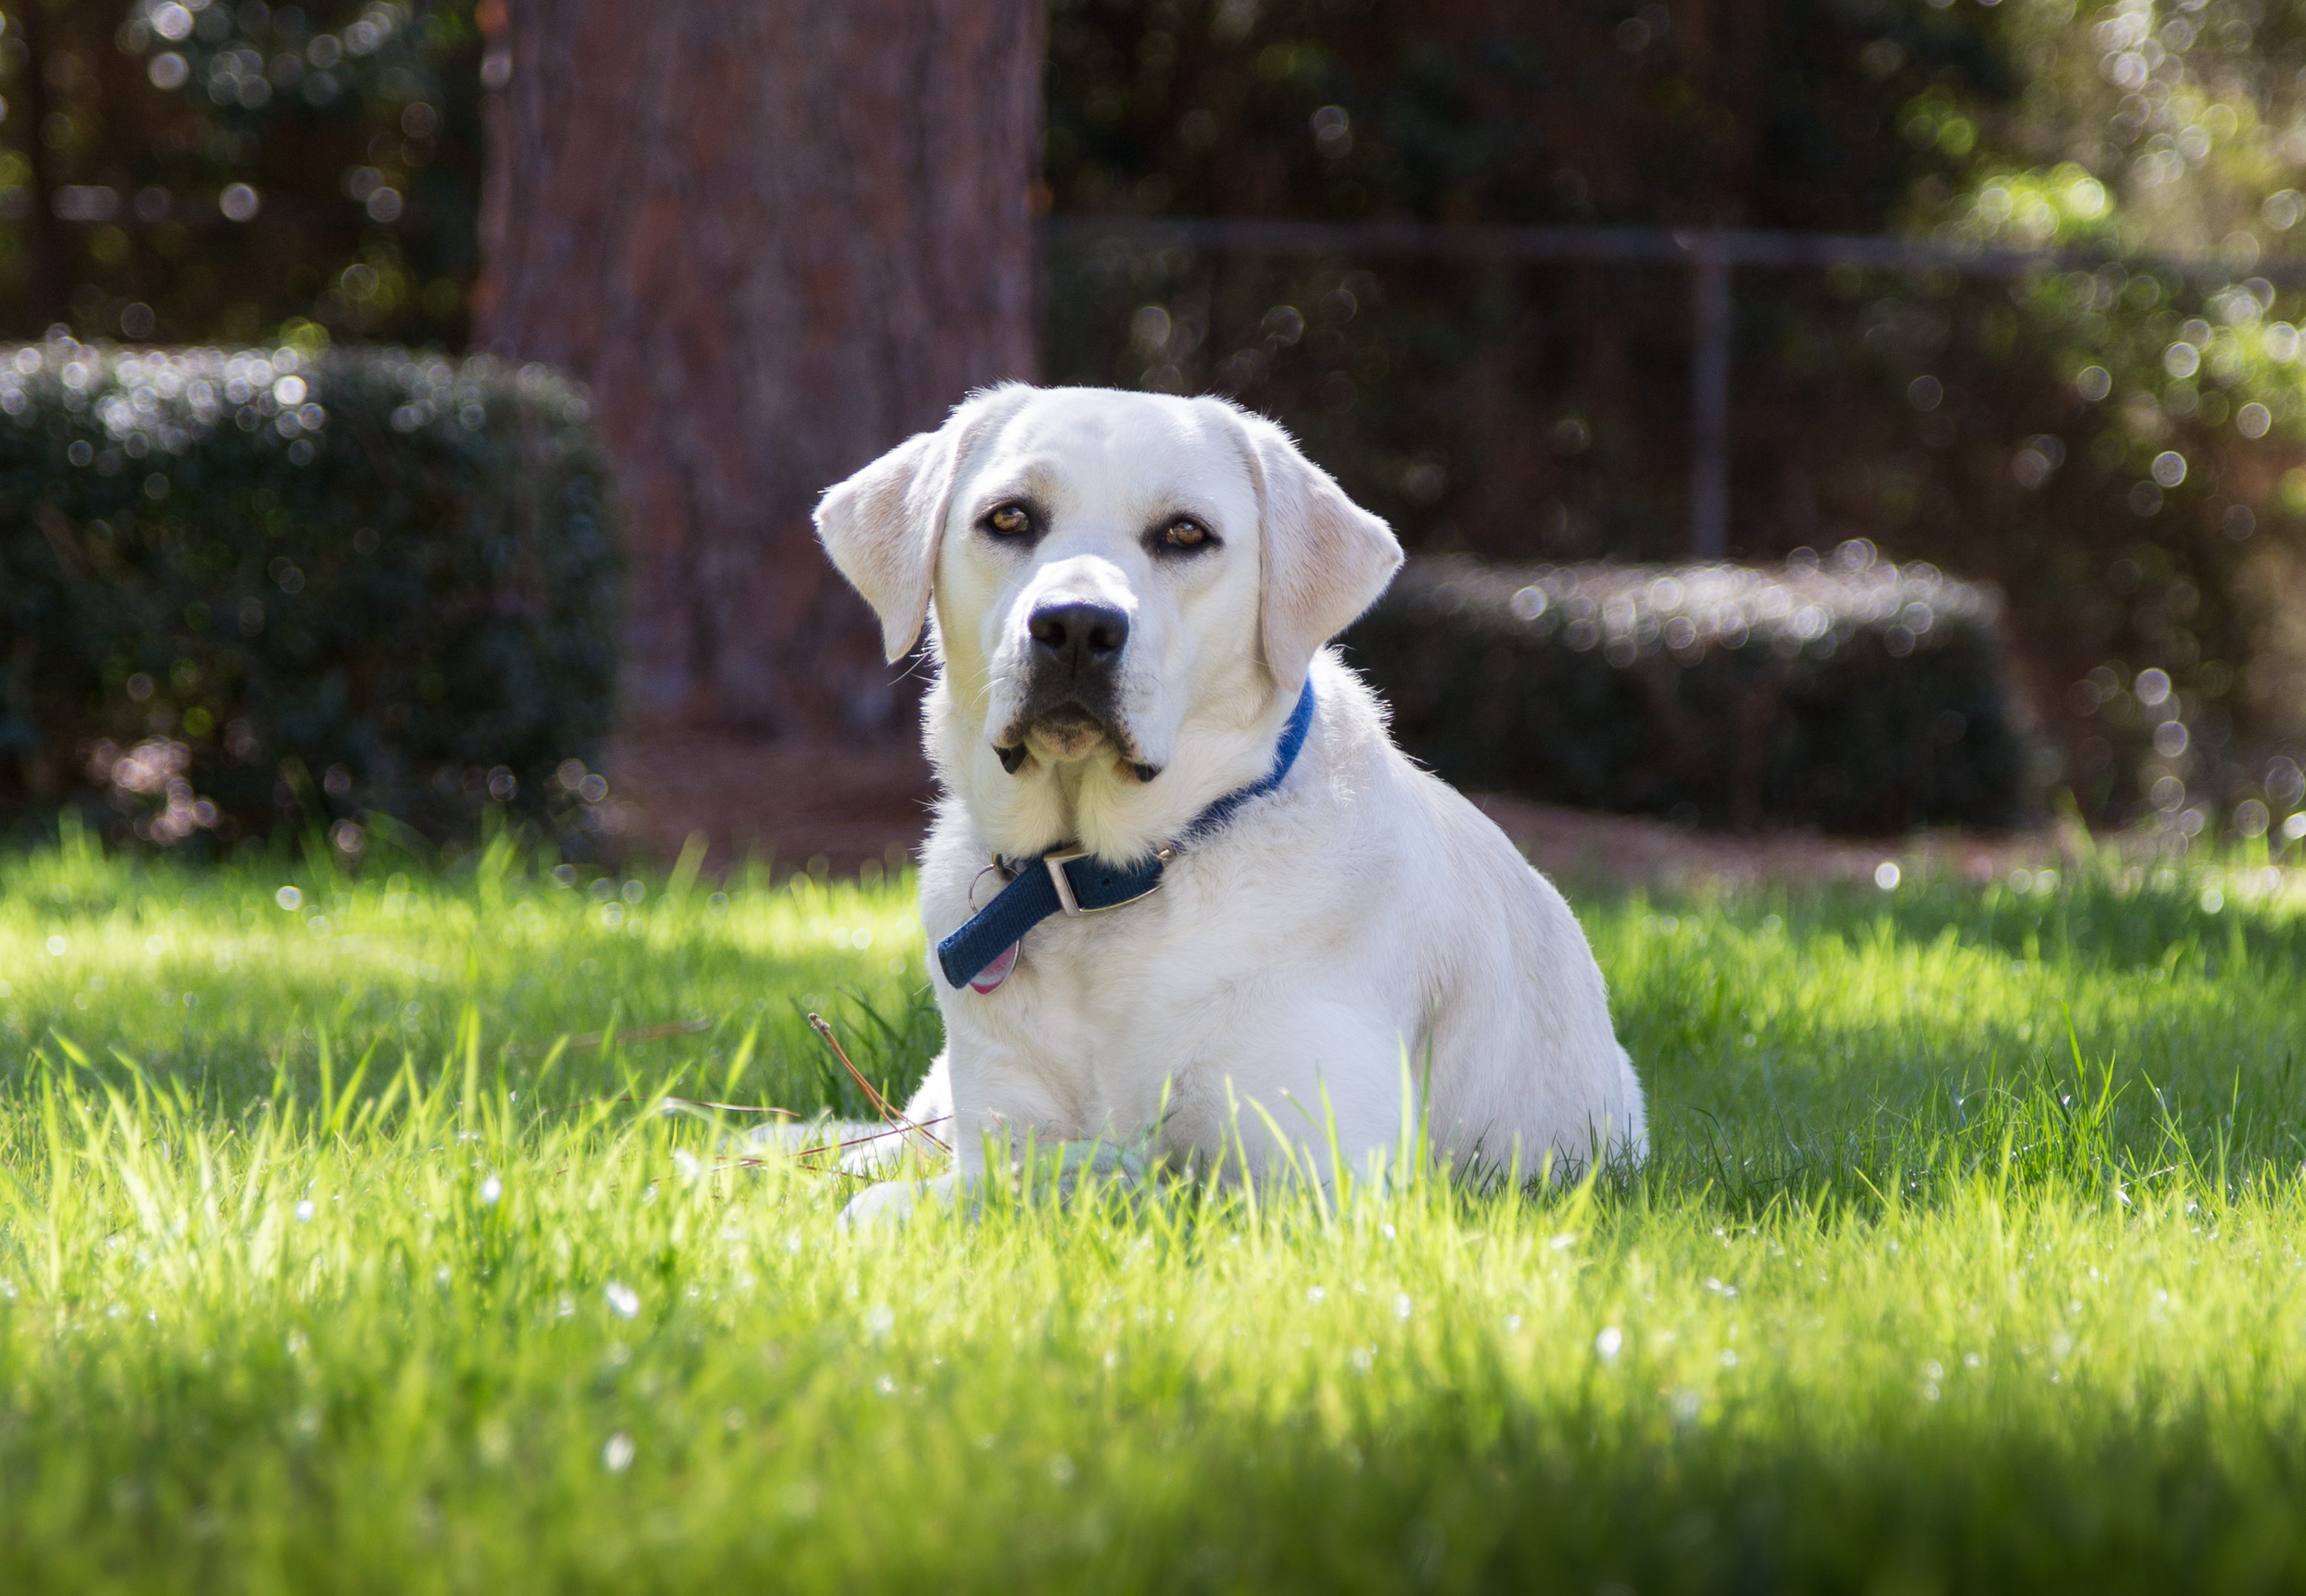 Aiken, South Carolina Family Dog Photography: Lifestyle photography includes the pet.